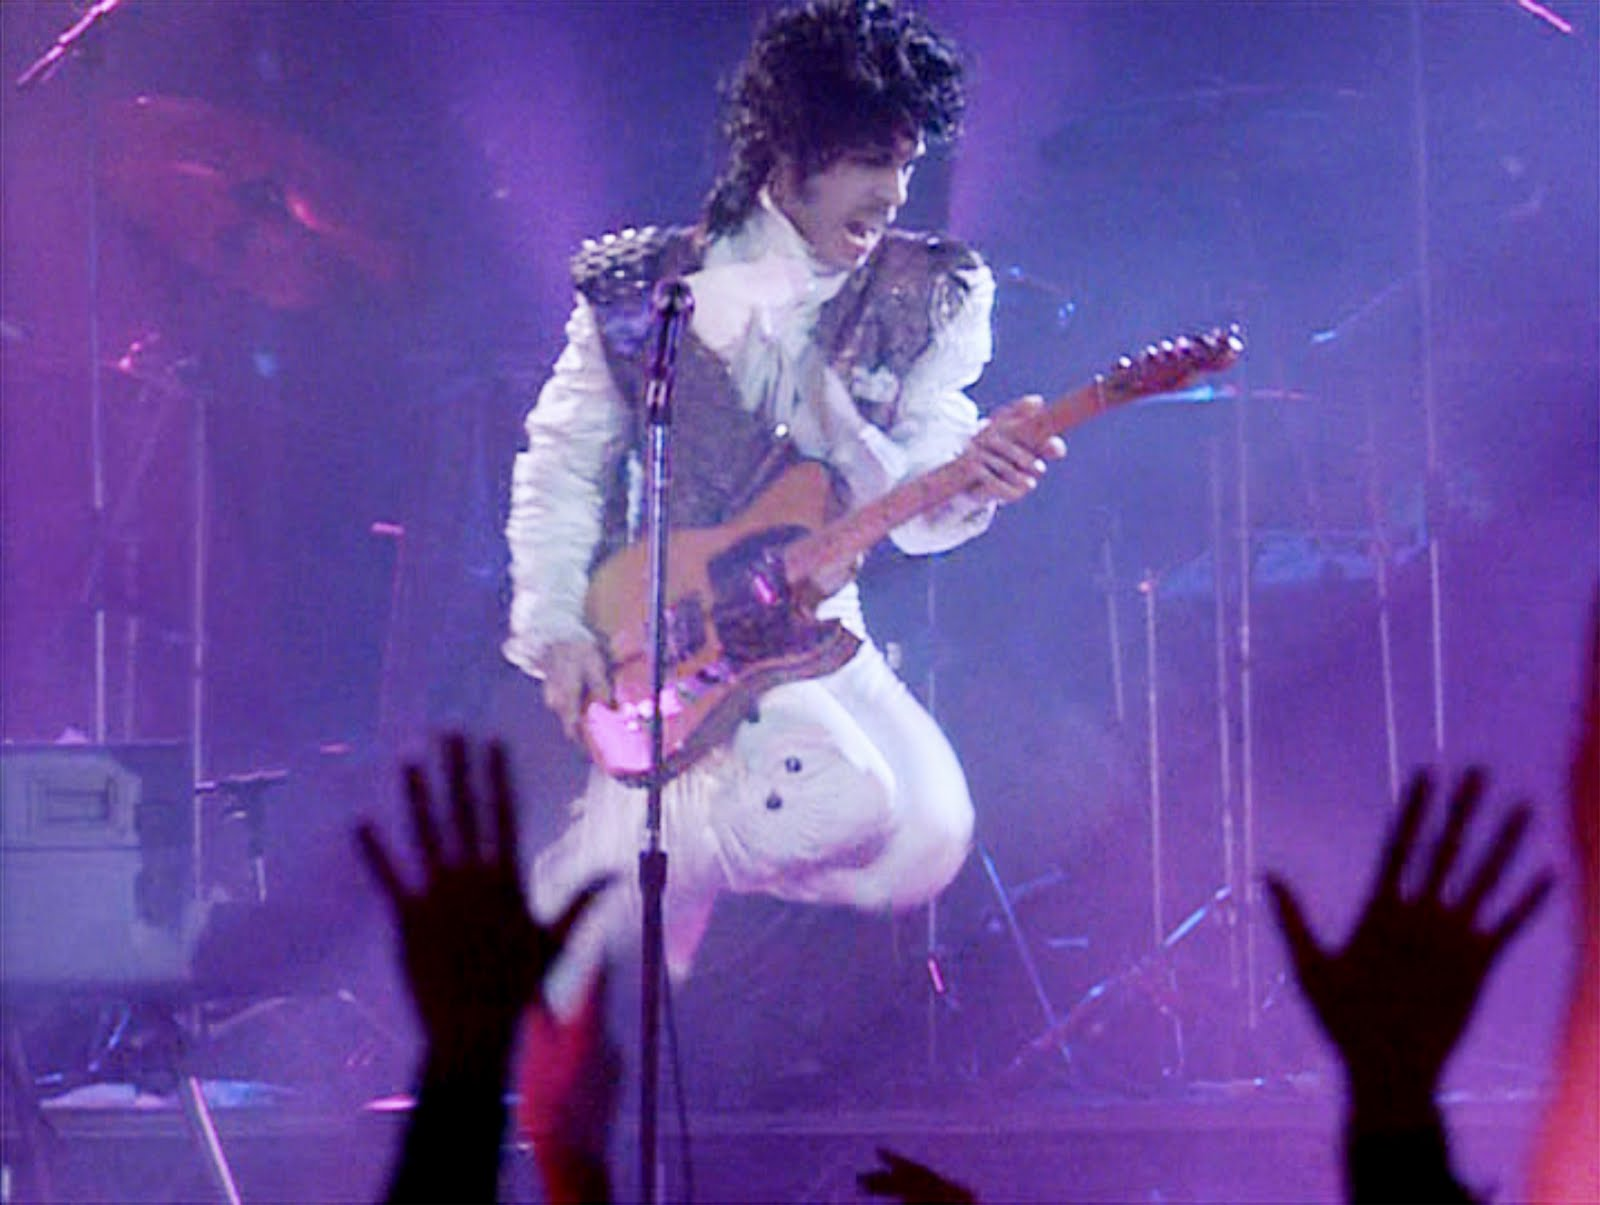 REMEMBERING PRINCE: And My Top Five Songs of His